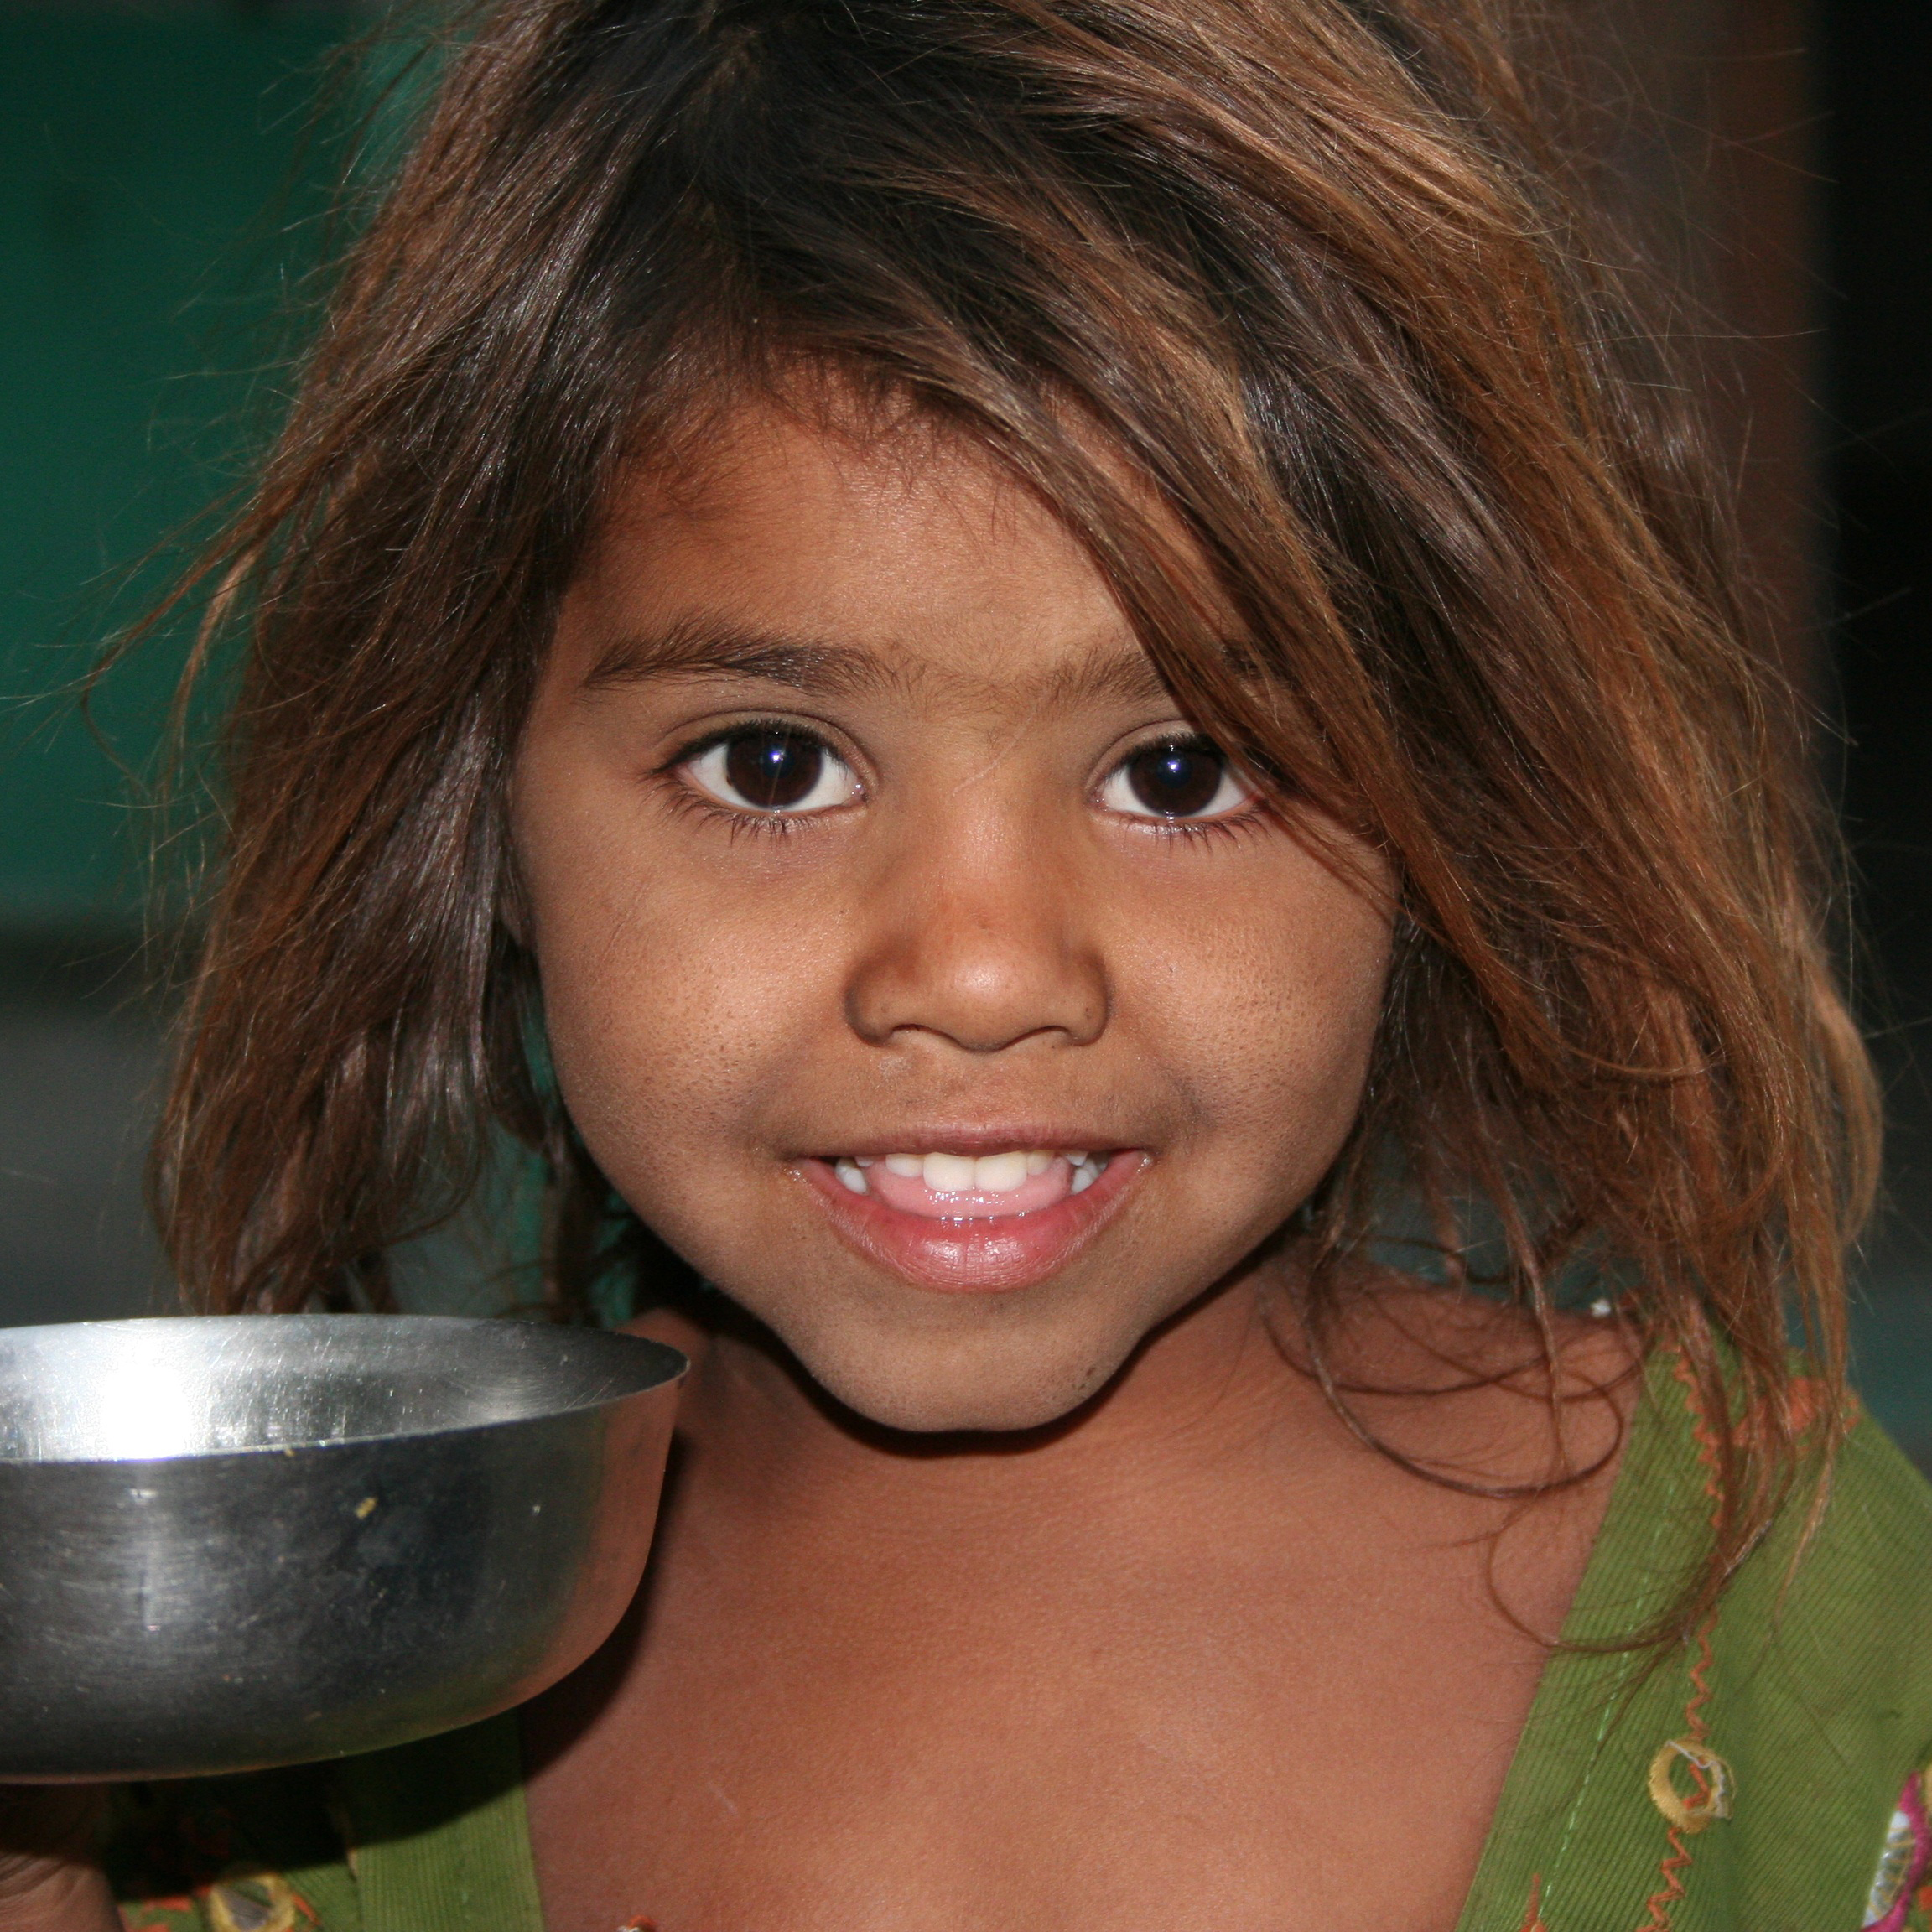 child-face-rajasthan-smile-46259